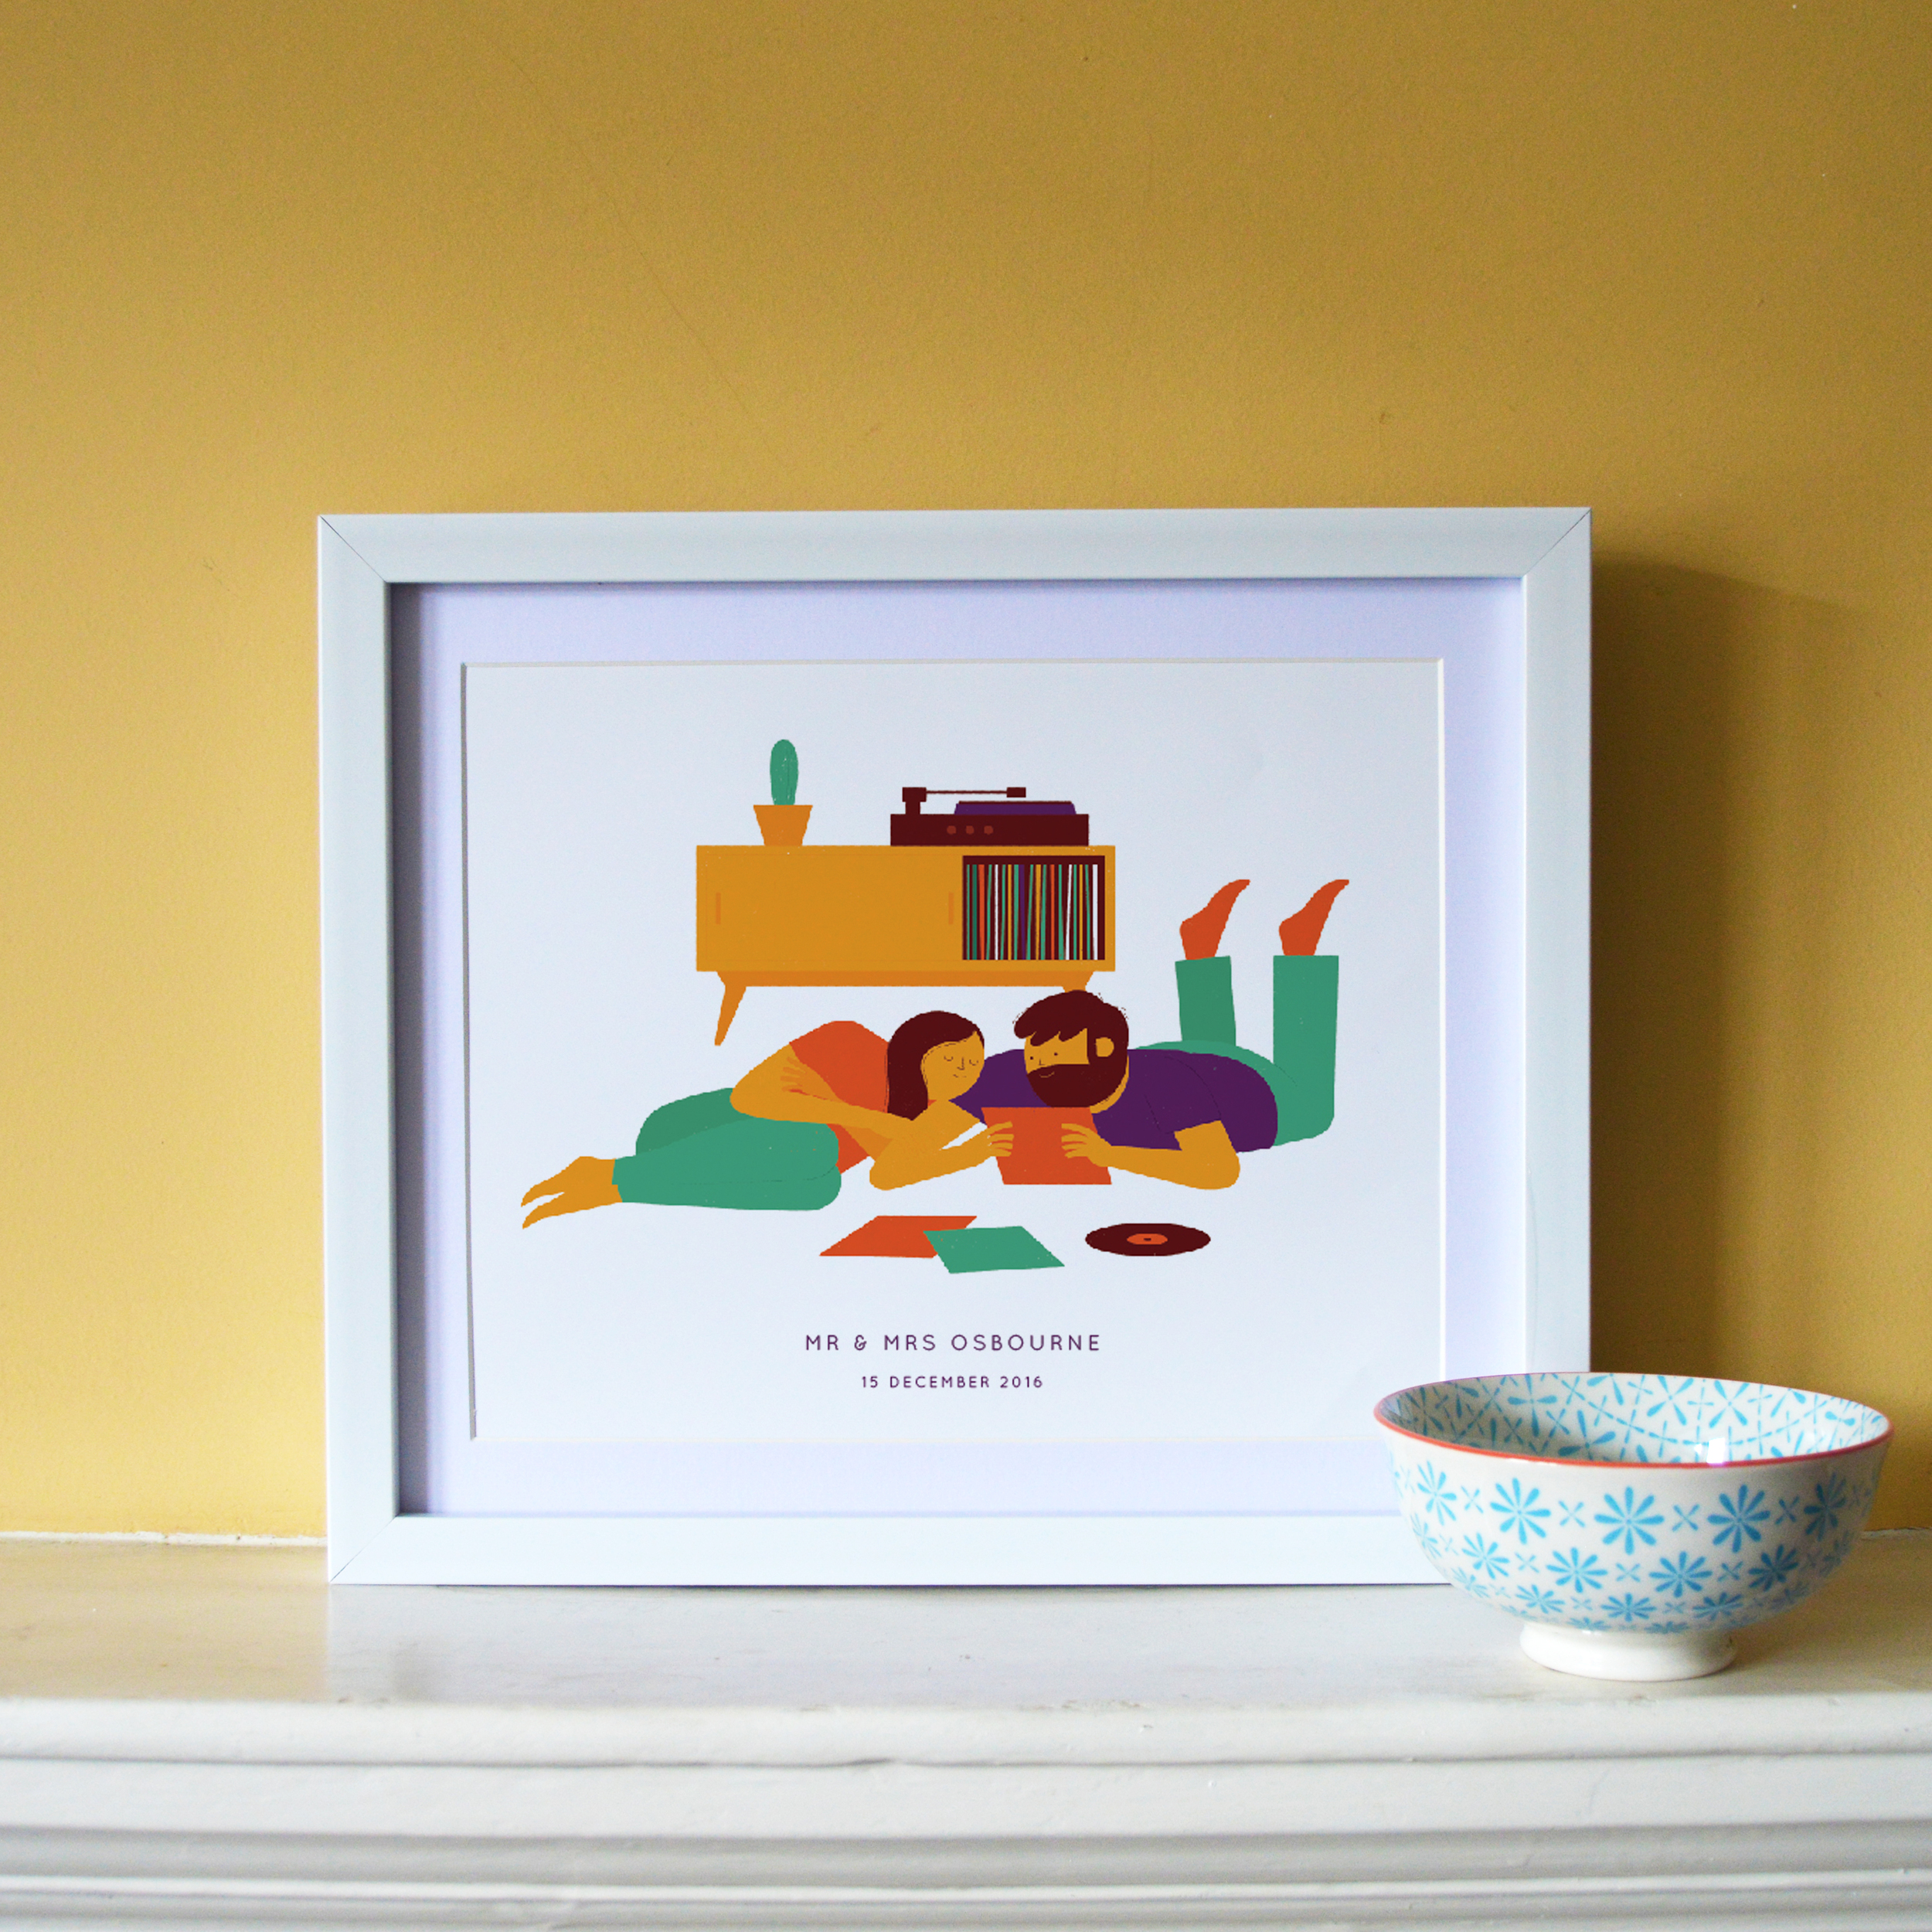 ' Record Playing ' created by Ben in the Dearly Beloved studio, available exclusively on  notonthehighstreet.com